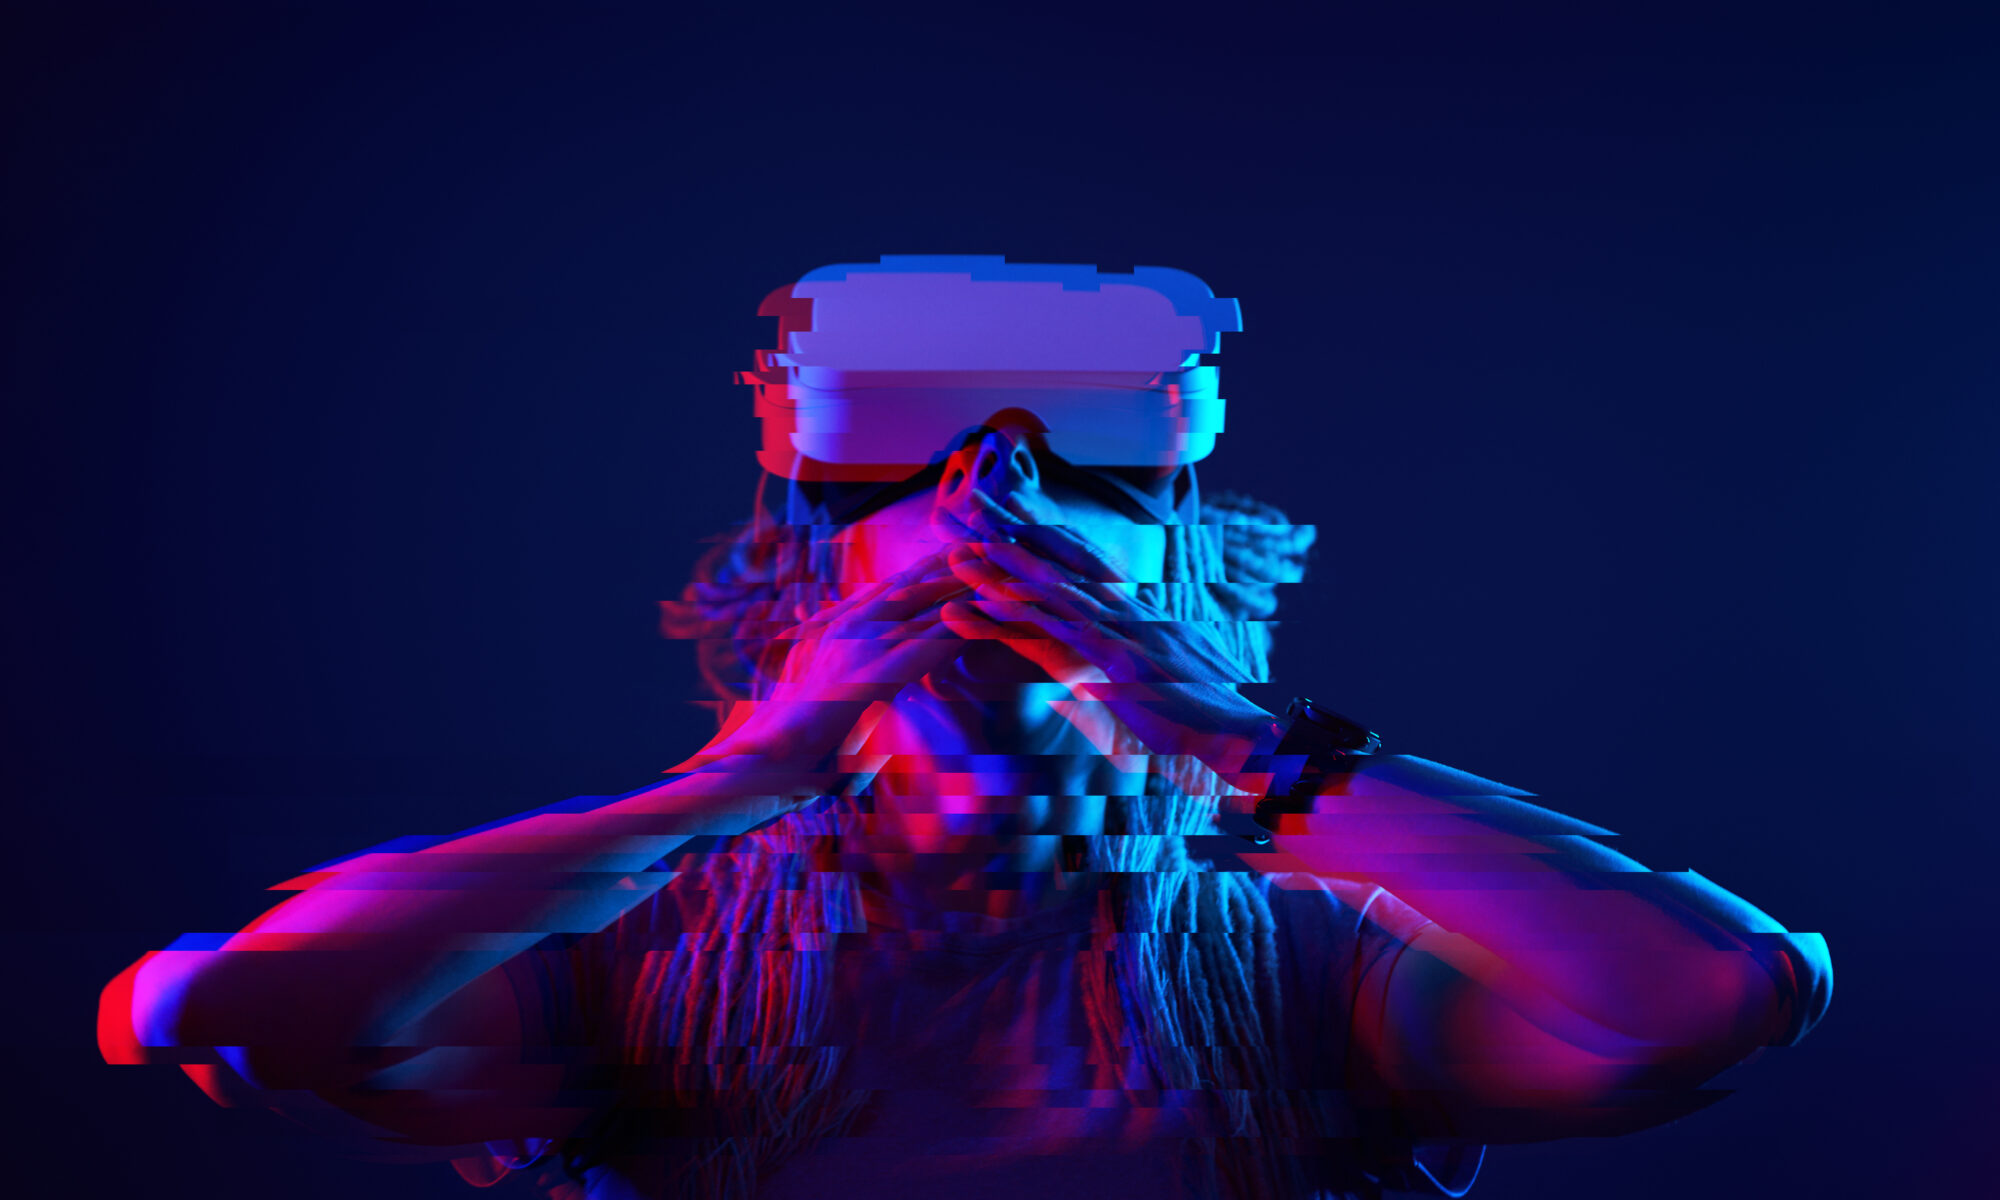 woman using virtual reality headset with glitch effect to represent psychedelic VR